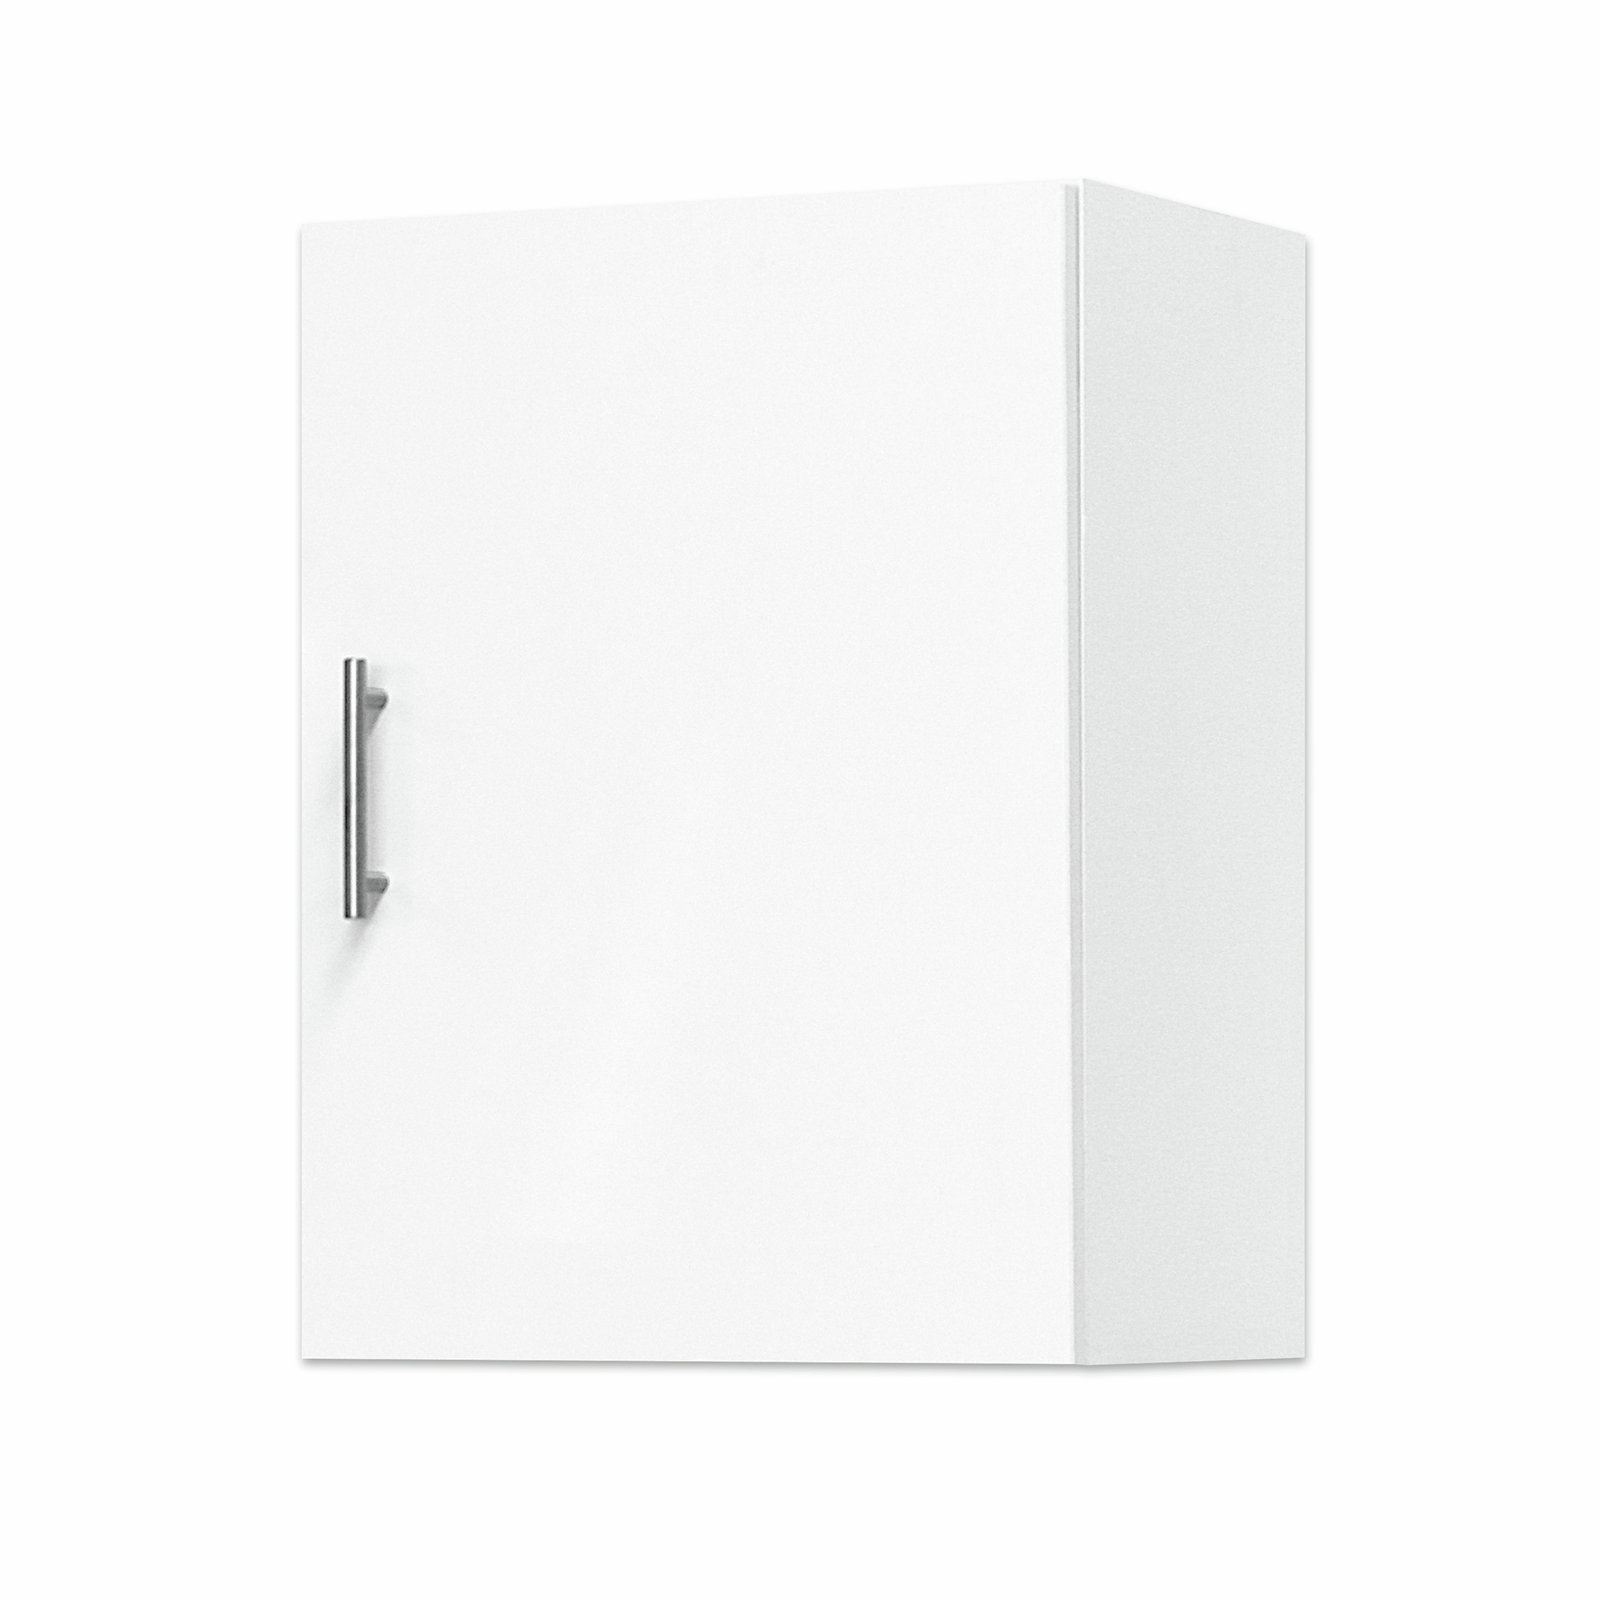 Bedford 450mm White 1 Door High Moisture Resistant Wall Cabinet